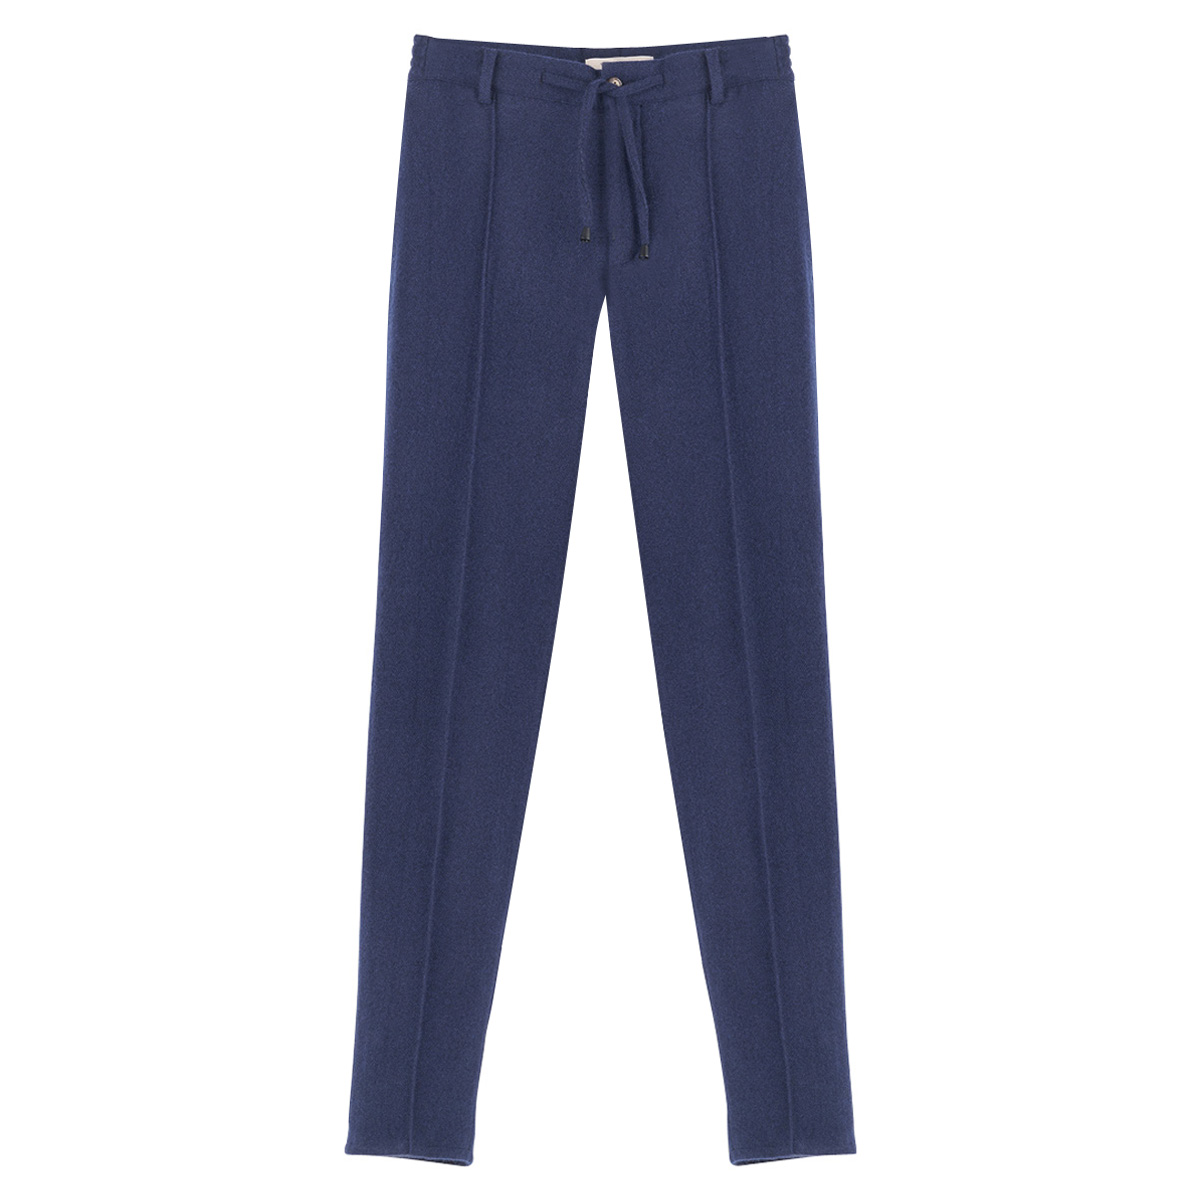 Navy Cashmere Drawstring Pants